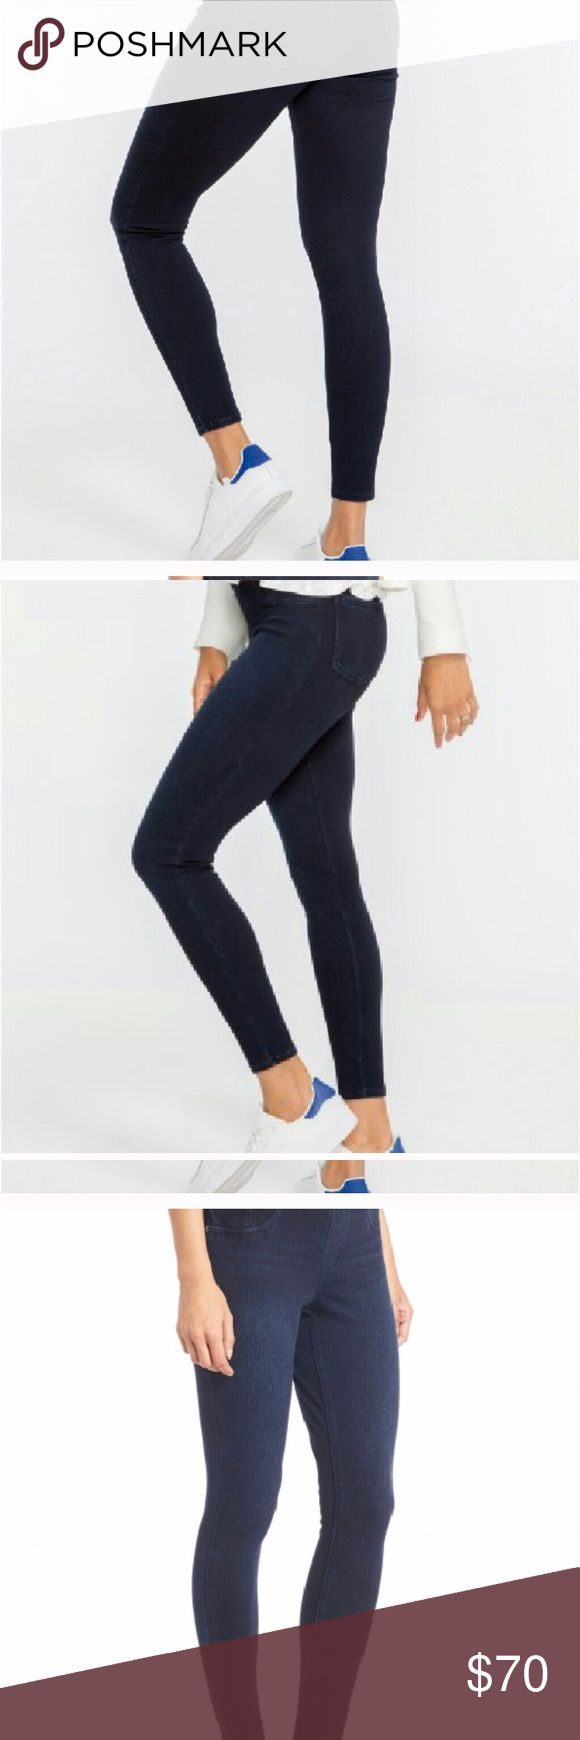 "Spanx jeggings Color is dark blue called ""twilight rinse"" back pockets. Very stretchy and slimming as the spanx brand always promises! Tags removed but never worn due to pregnancy SPANX Pants"